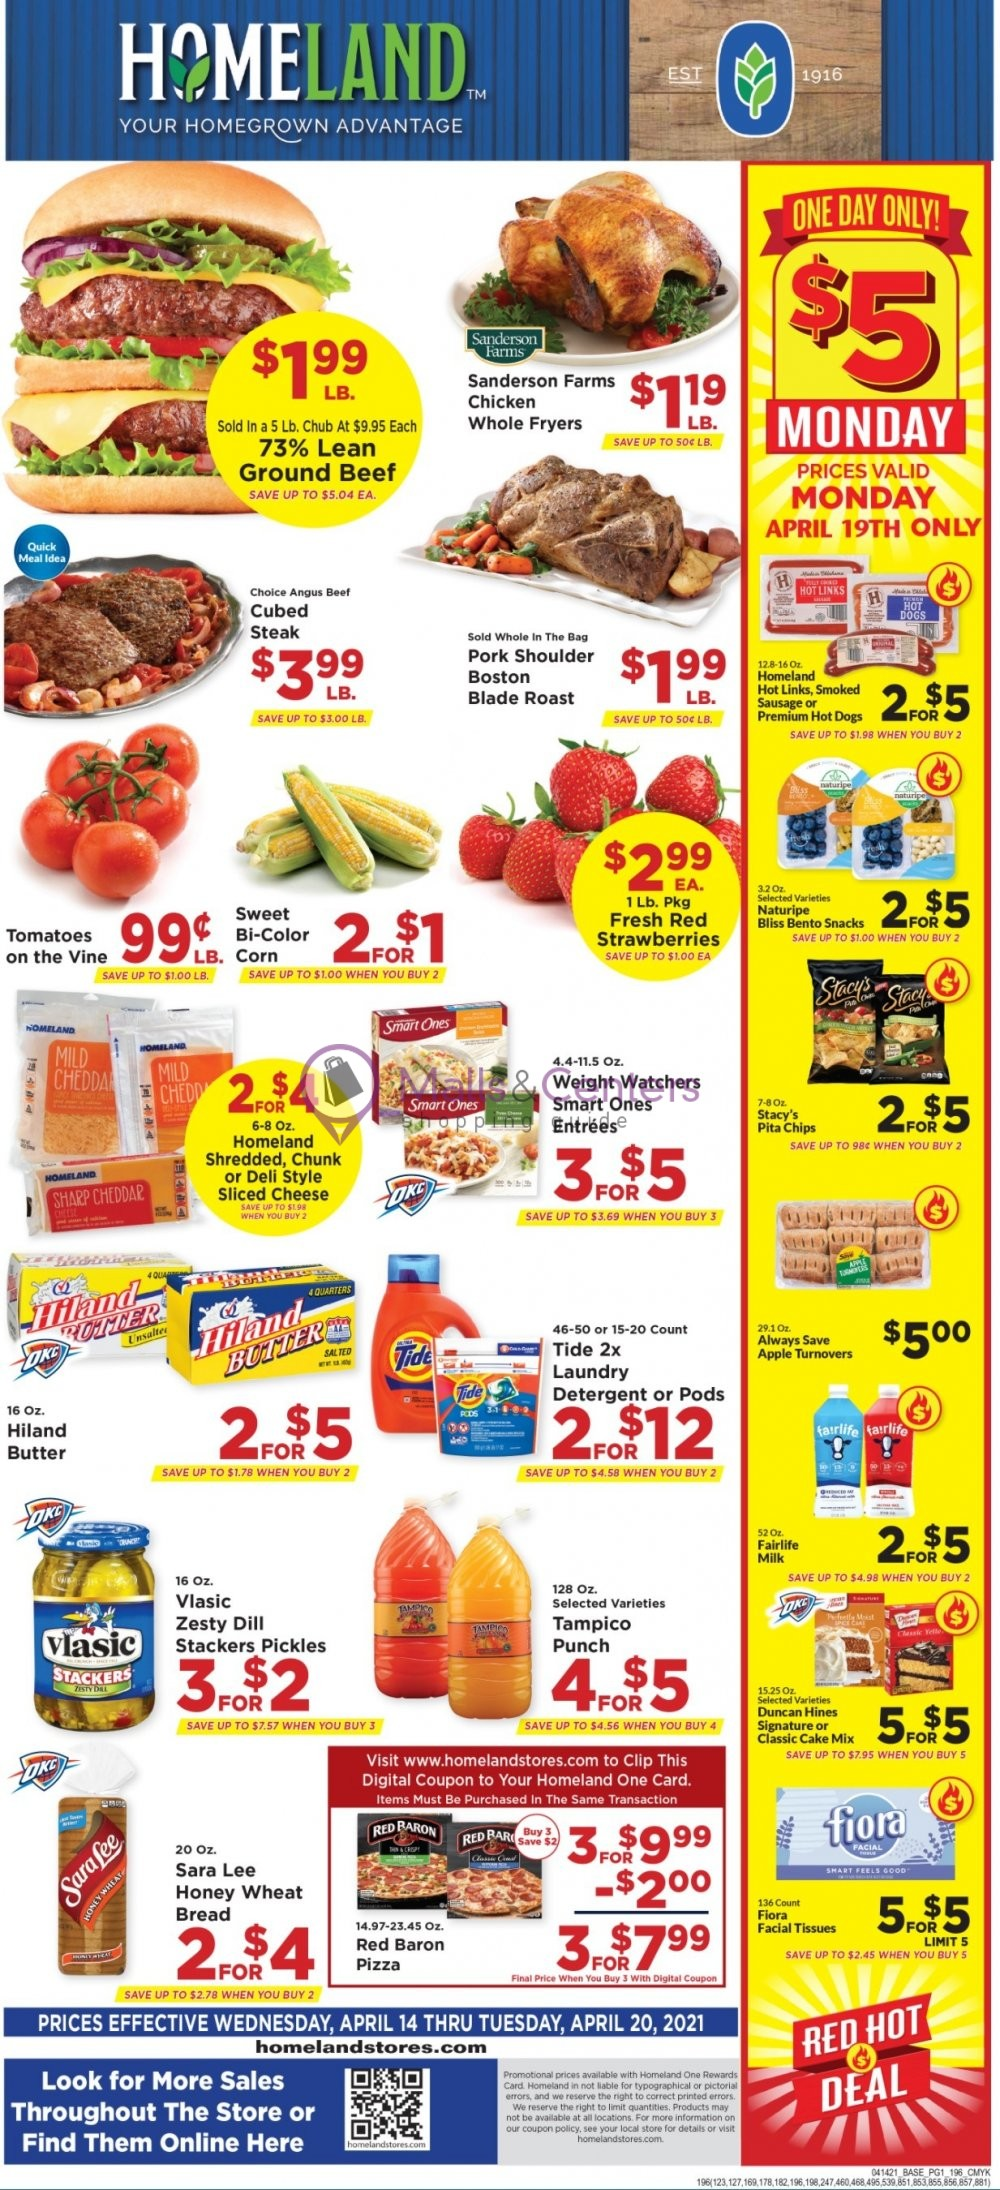 weekly ads Homeland - page 1 - mallscenters.com